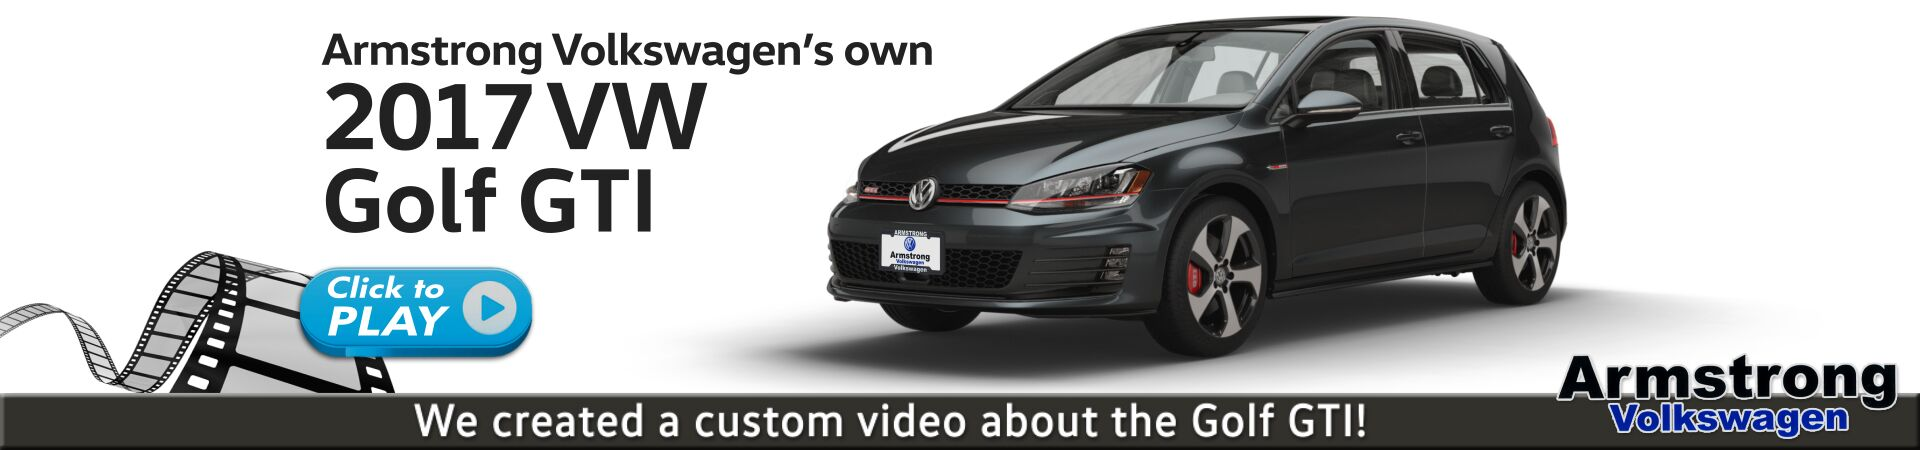 vw golf gti video